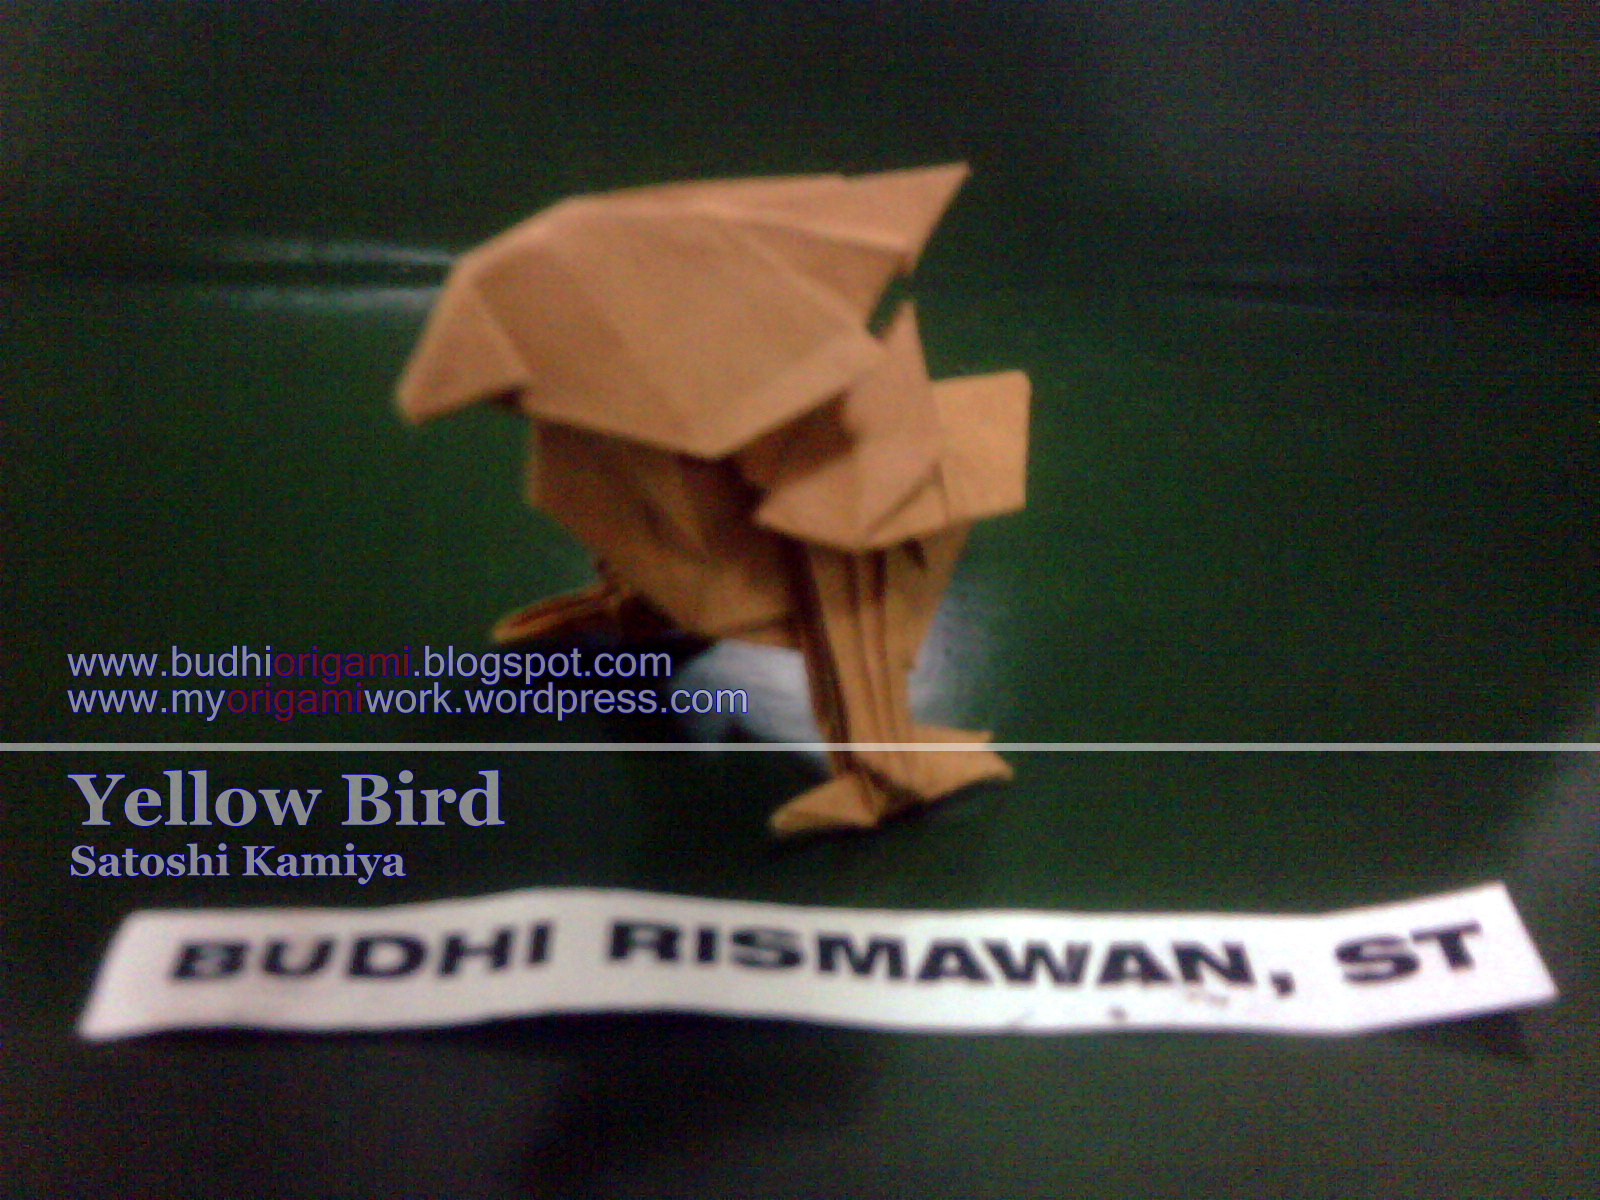 satoshi kamiya diagram external regulator alternator wiring yellow bird  myorigamiwork